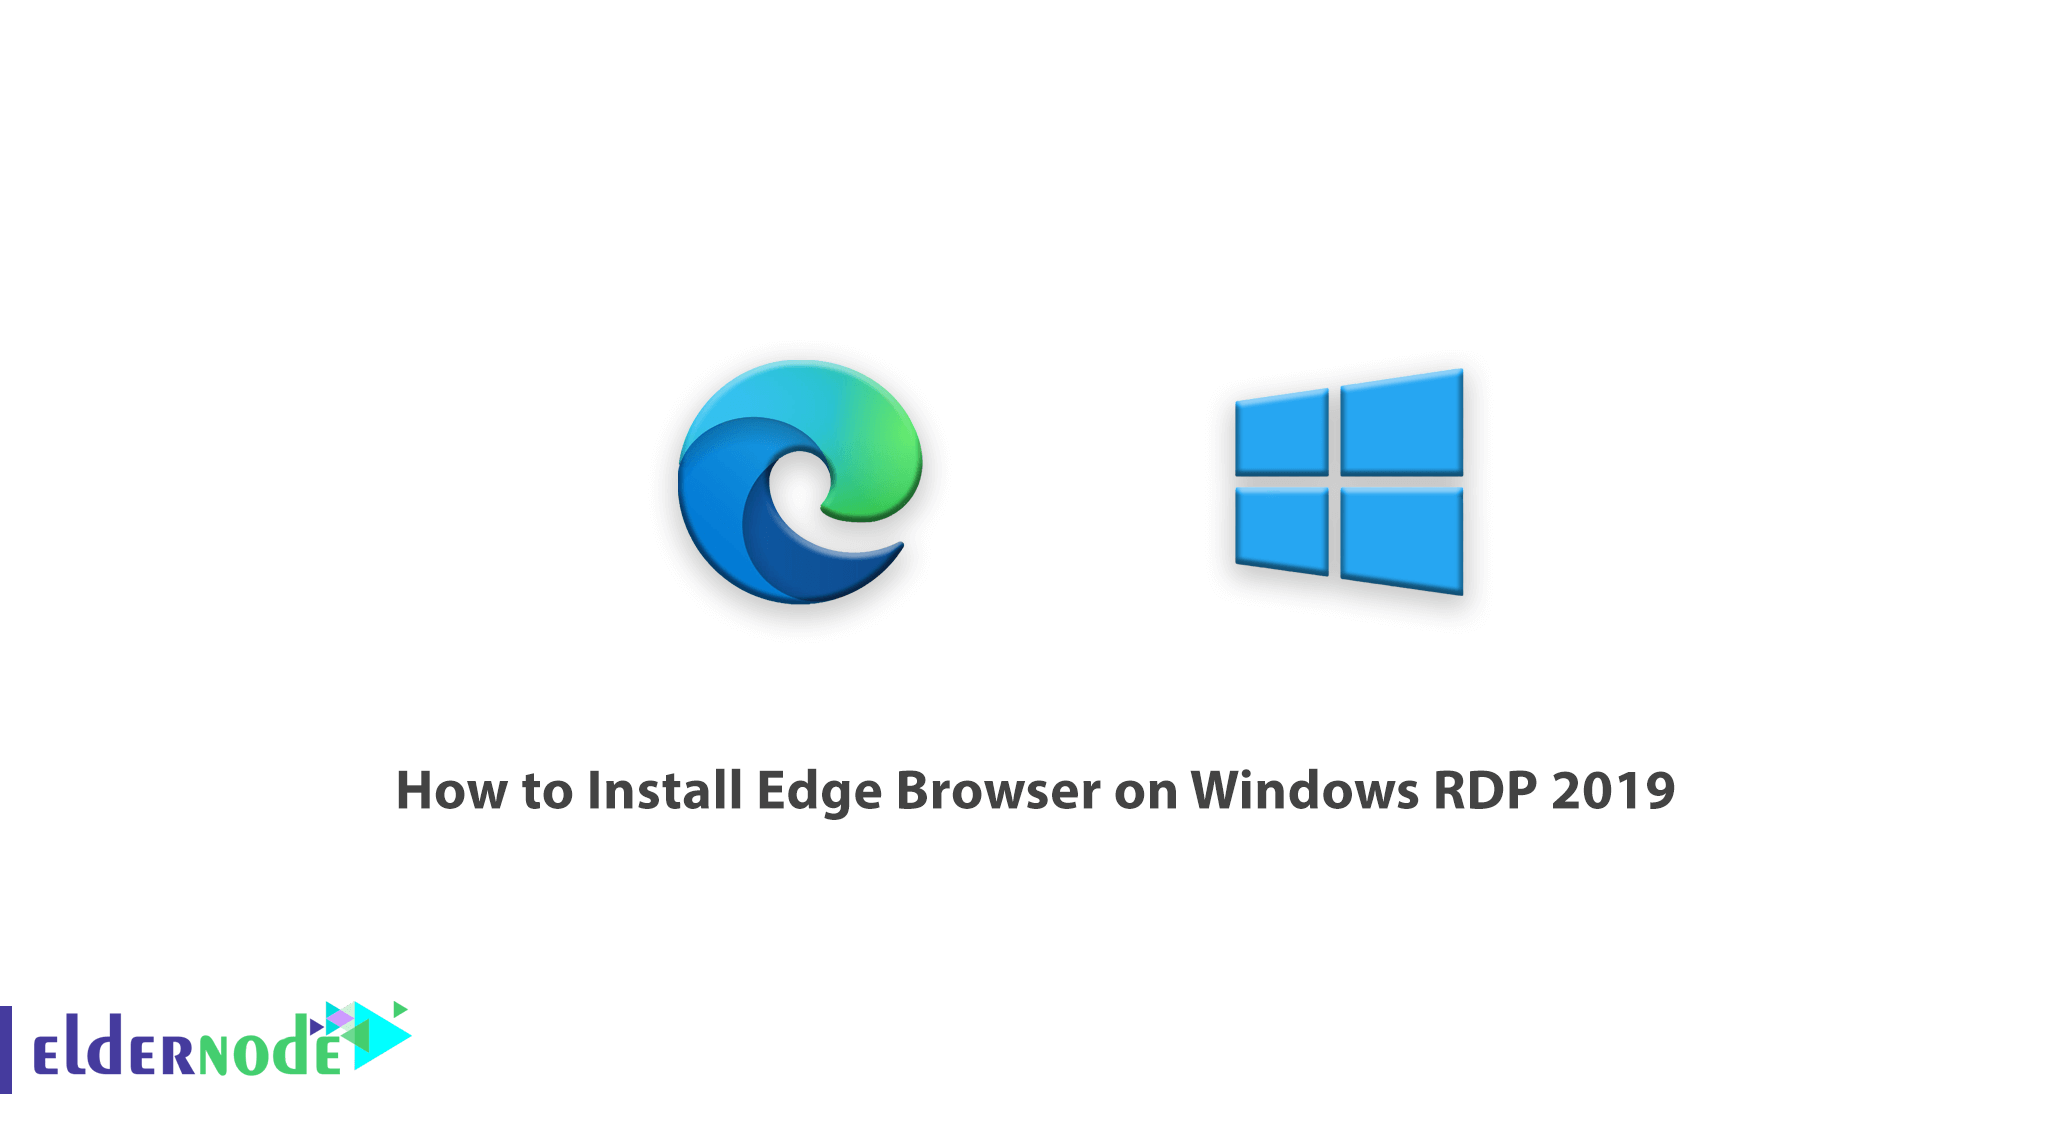 How to Install Edge Browser on Windows RDP 2019